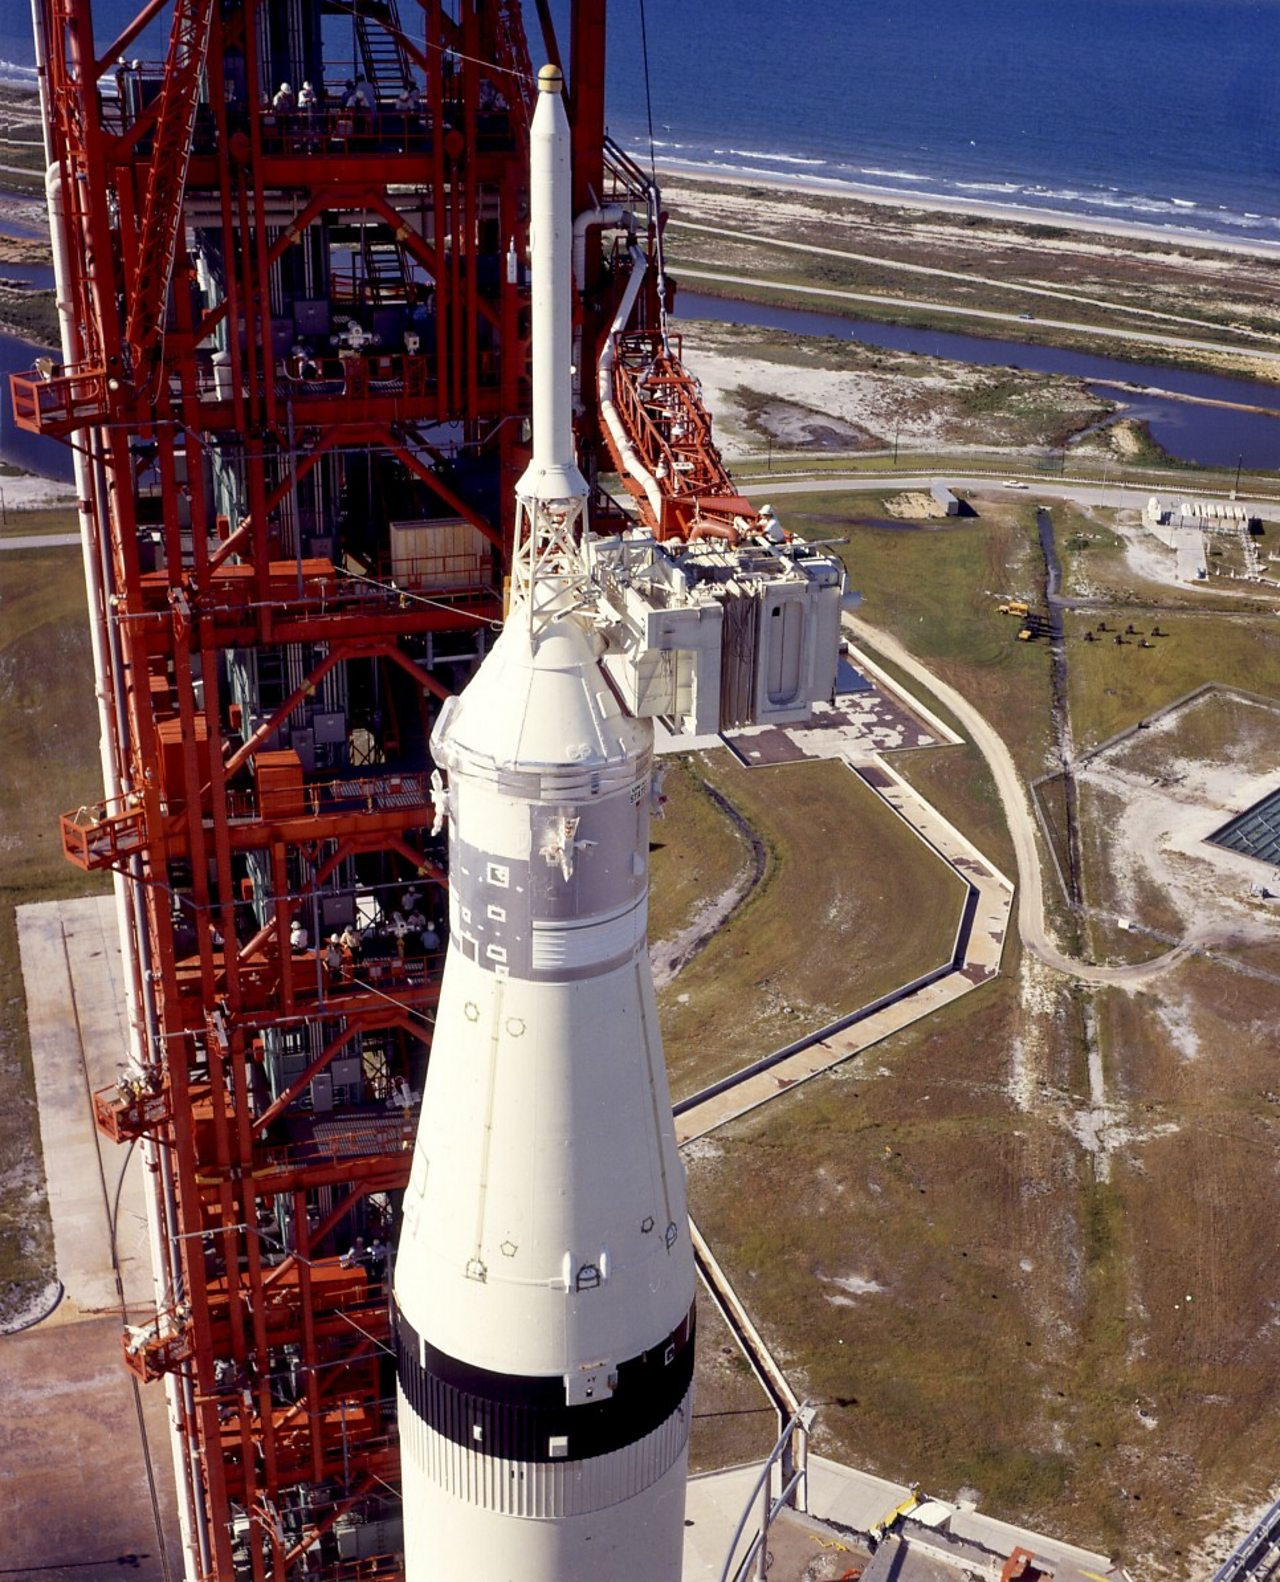 Technicians working on the Saturn V before launch.